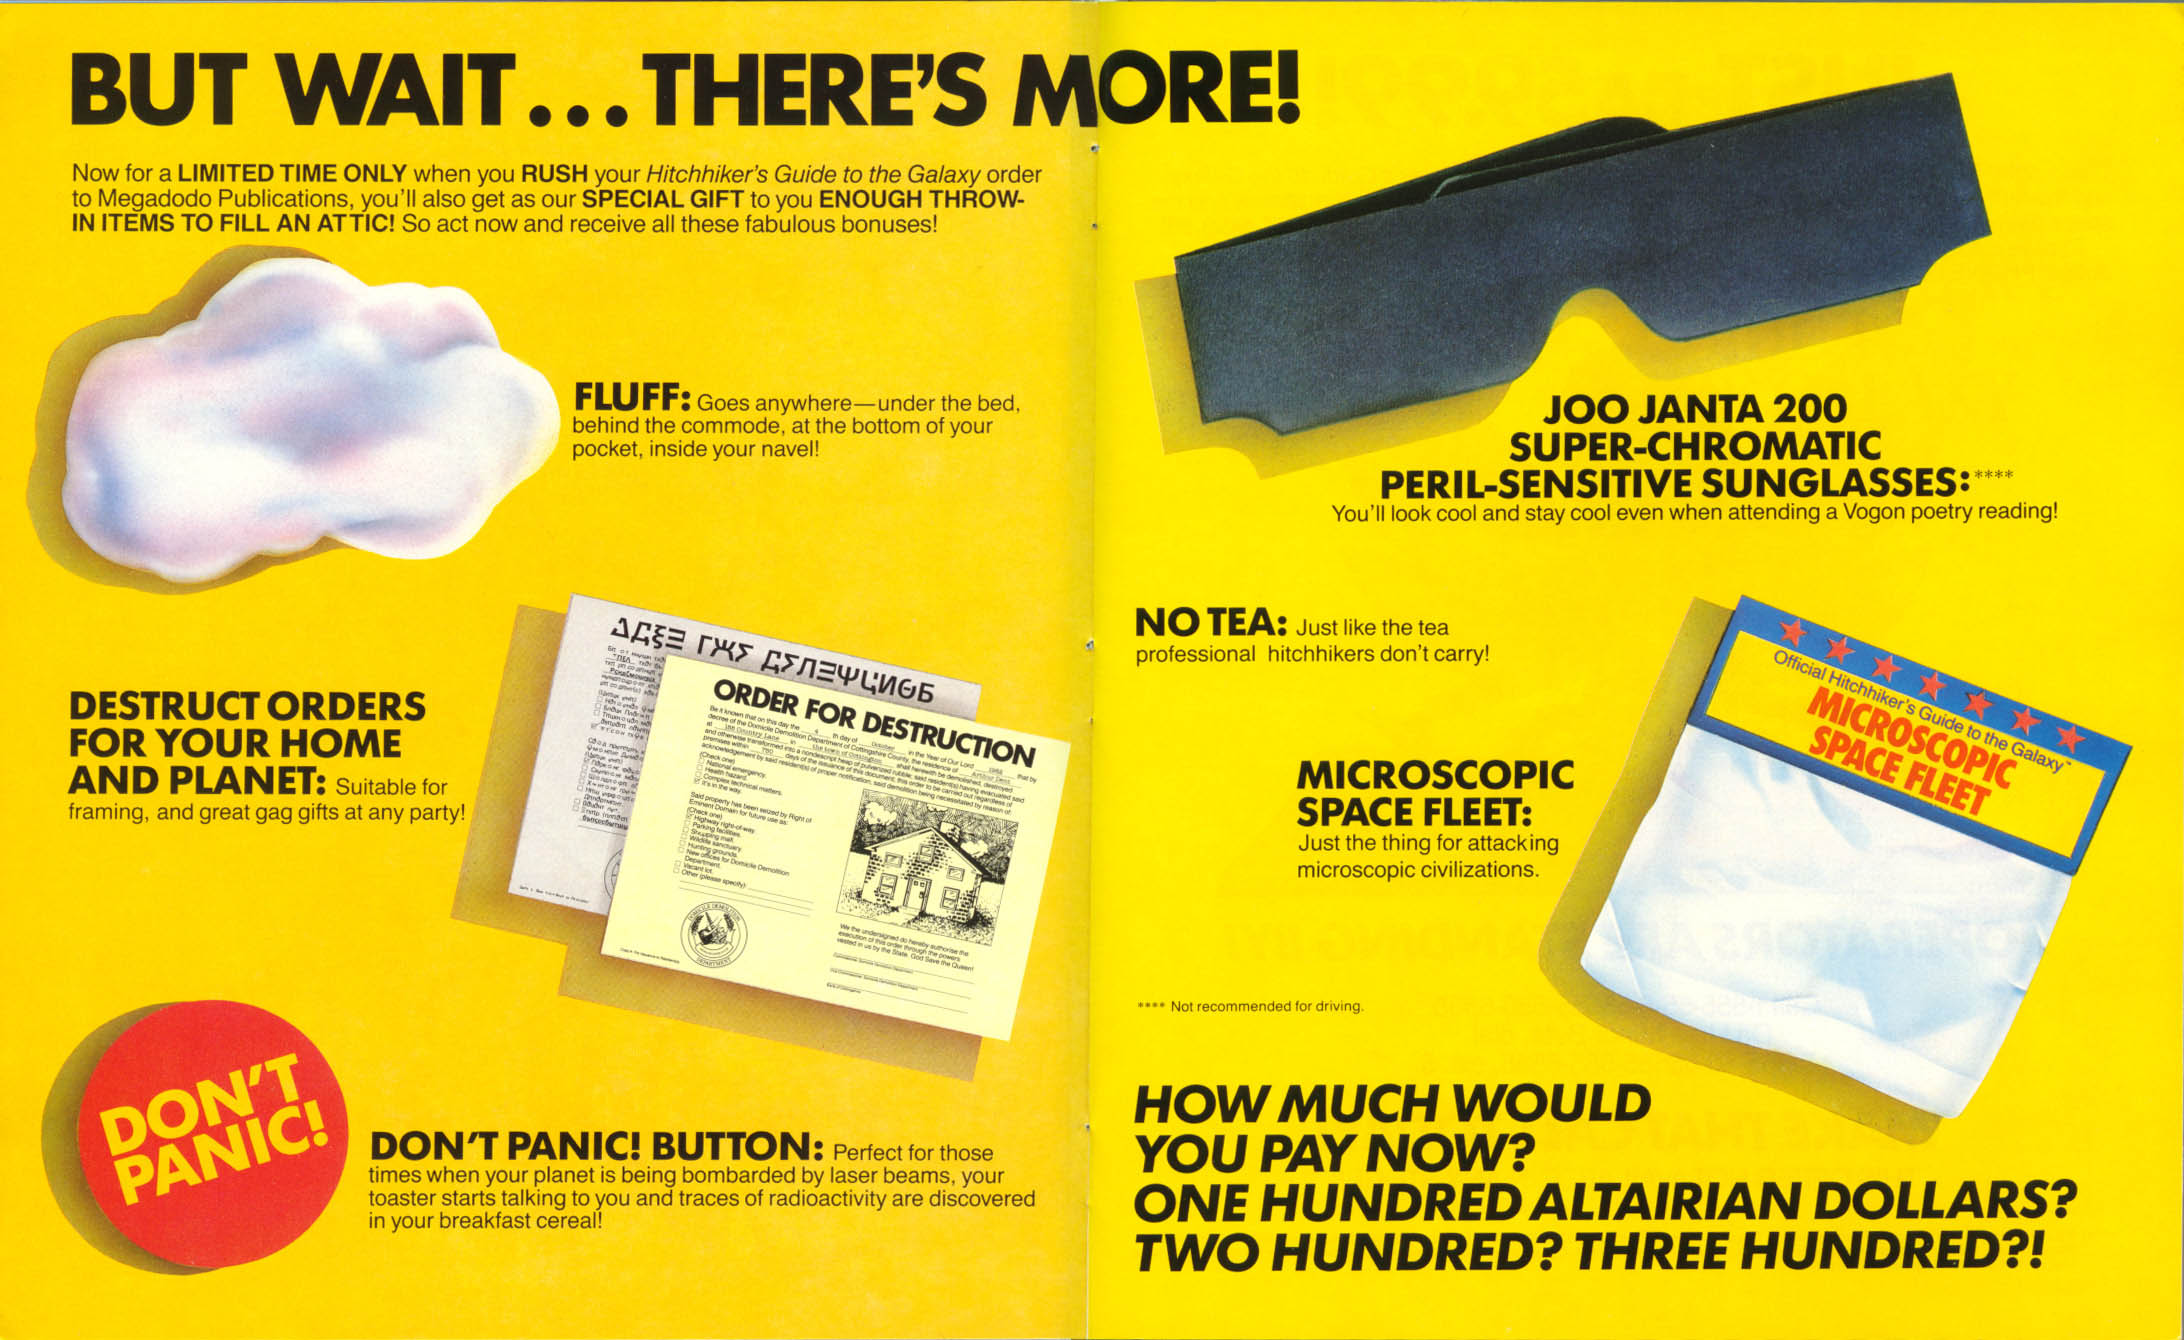 Image of 2 yellow-colored pages. [Text at top left] BUT WAIT...THERE'S MORE! Now for a LIMITED TIME ONLY when you RUSH your Hitchhiker's Guide to the Galaxy order to Megadodo Publications, you'll also get as our SPECIAL GIFT to you ENOUGH THROW-IN ITEMS TO FILL AN ATTIC! So act now and receive all these fabulous bonuses! [leftmost page, reading down] [Color image of white cotton ball] FLUFF: Goes anywhere—under the bed, behind the commode, at the bottom of your pocket, inside your navel! [image of order for destruction] DESTRUCT ORDERS FOR YOUR HOME AND PLANET: Suitable for framing, and great gag gifts at any party! [Image of yellow button/badge reading in yellow DON'T PANIC!] DON'T PANIC! BUTTON: Perfect for those times when your planet is being bombarded by laser beams, your toaster starts talking to you and traces of radioactivity are discovered in your breakfast cereal! [rightmost page, reading down] [Image of solid black glasses] JOO JANTA 200 SUPER-CHROMATIC PERIL-SENSITIVE SUNGLASSES:**** You'll look cool and stay cool even when attending a Vogon poetry reading! [**** footnote in small type reads, Not recommended for driving] [No image provided] NO TEA: Just like the tea professional hitchhikers don't carry! [Image of a silvery bag with a yellow, blue, and red tag atop reading Official Hitchhiker's Guide to the Galaxy MICROSCOPIC SPACE FLEET] MICROSCOPIC SPACE FLEET: Just the thing for attacking microscopic civilizations. [Text at bottom right] HOW MUCH WOULD YOU PAY NOW? ONE HUNDRED ALTAIRIAN DOLLARS? TWO HUNDRED? THREE HUNDRED?!